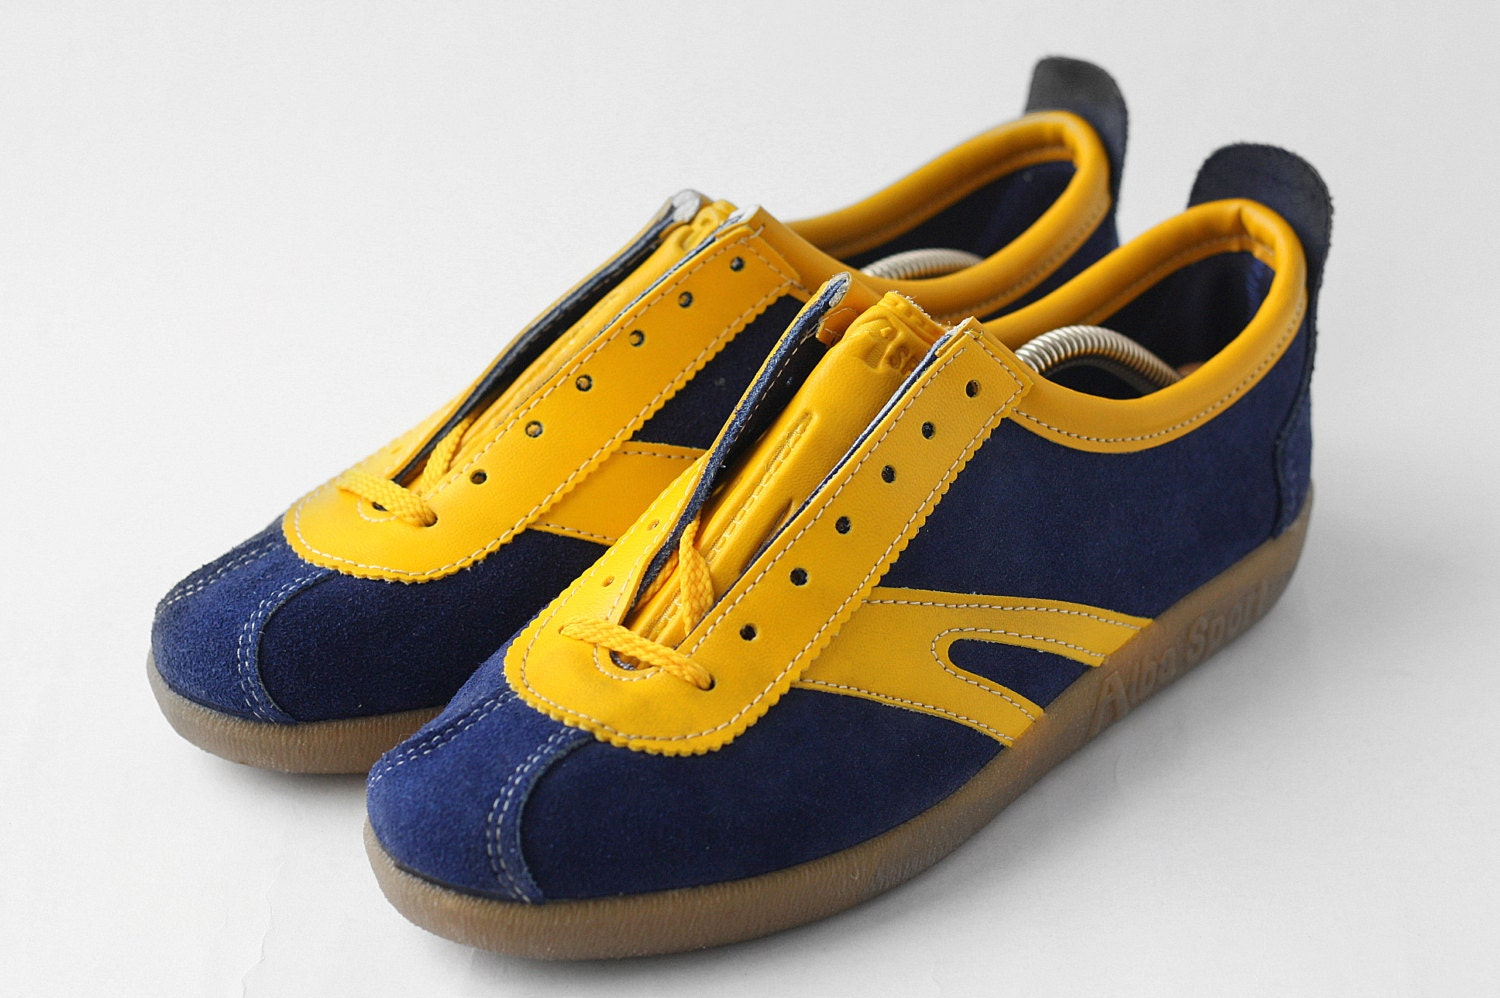 new alba sport shoes made in italy mens womens unisex